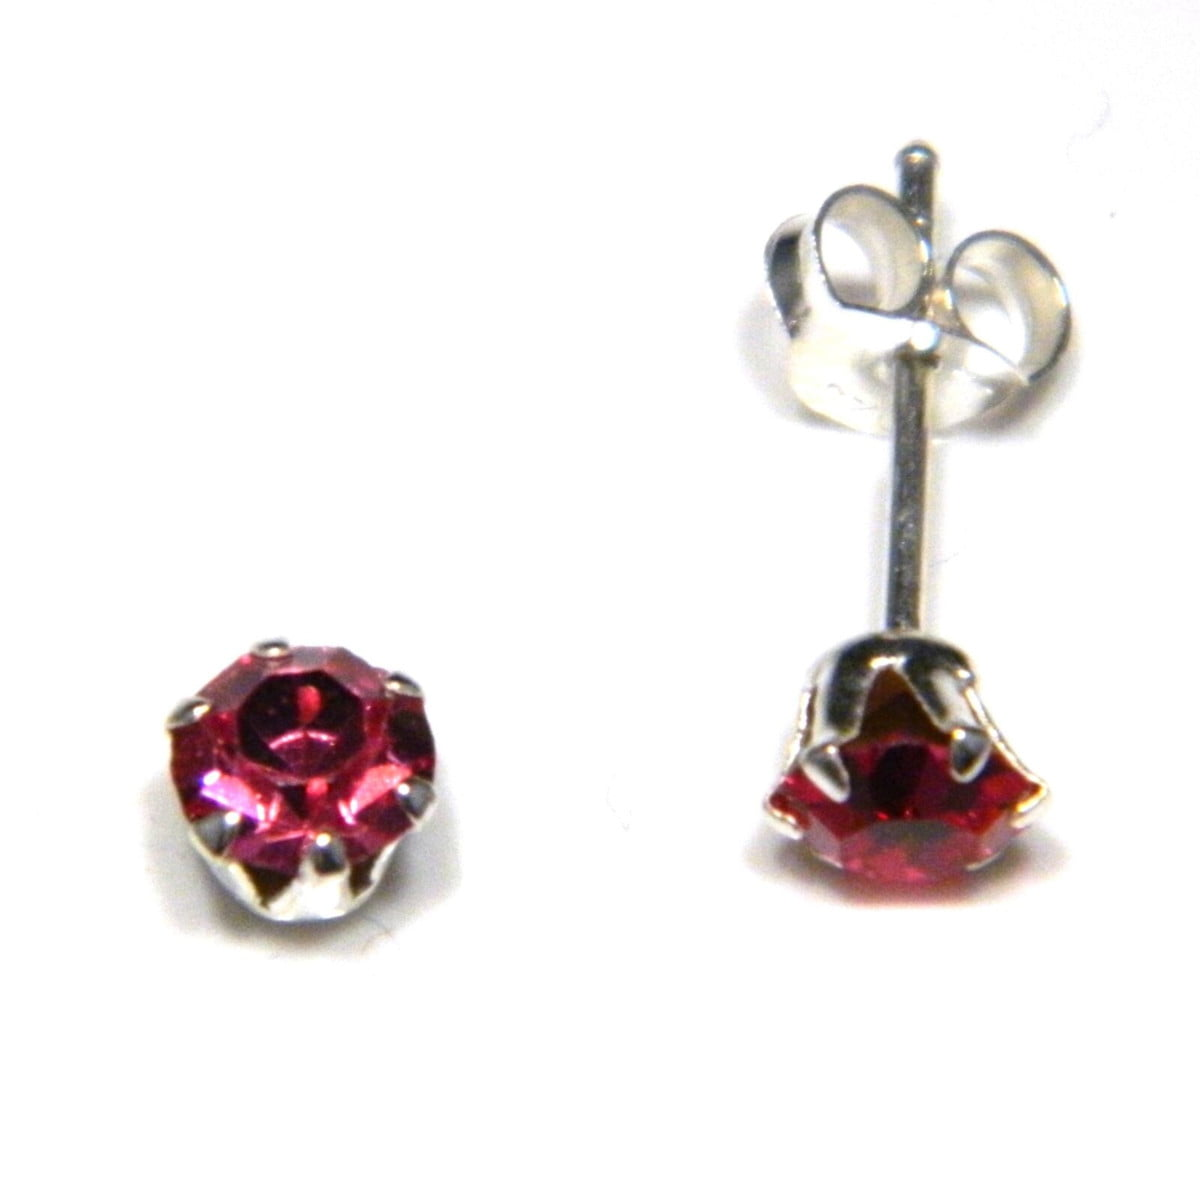 5 mm pink coloured crystal stud round solitaire earrings in sterling silver